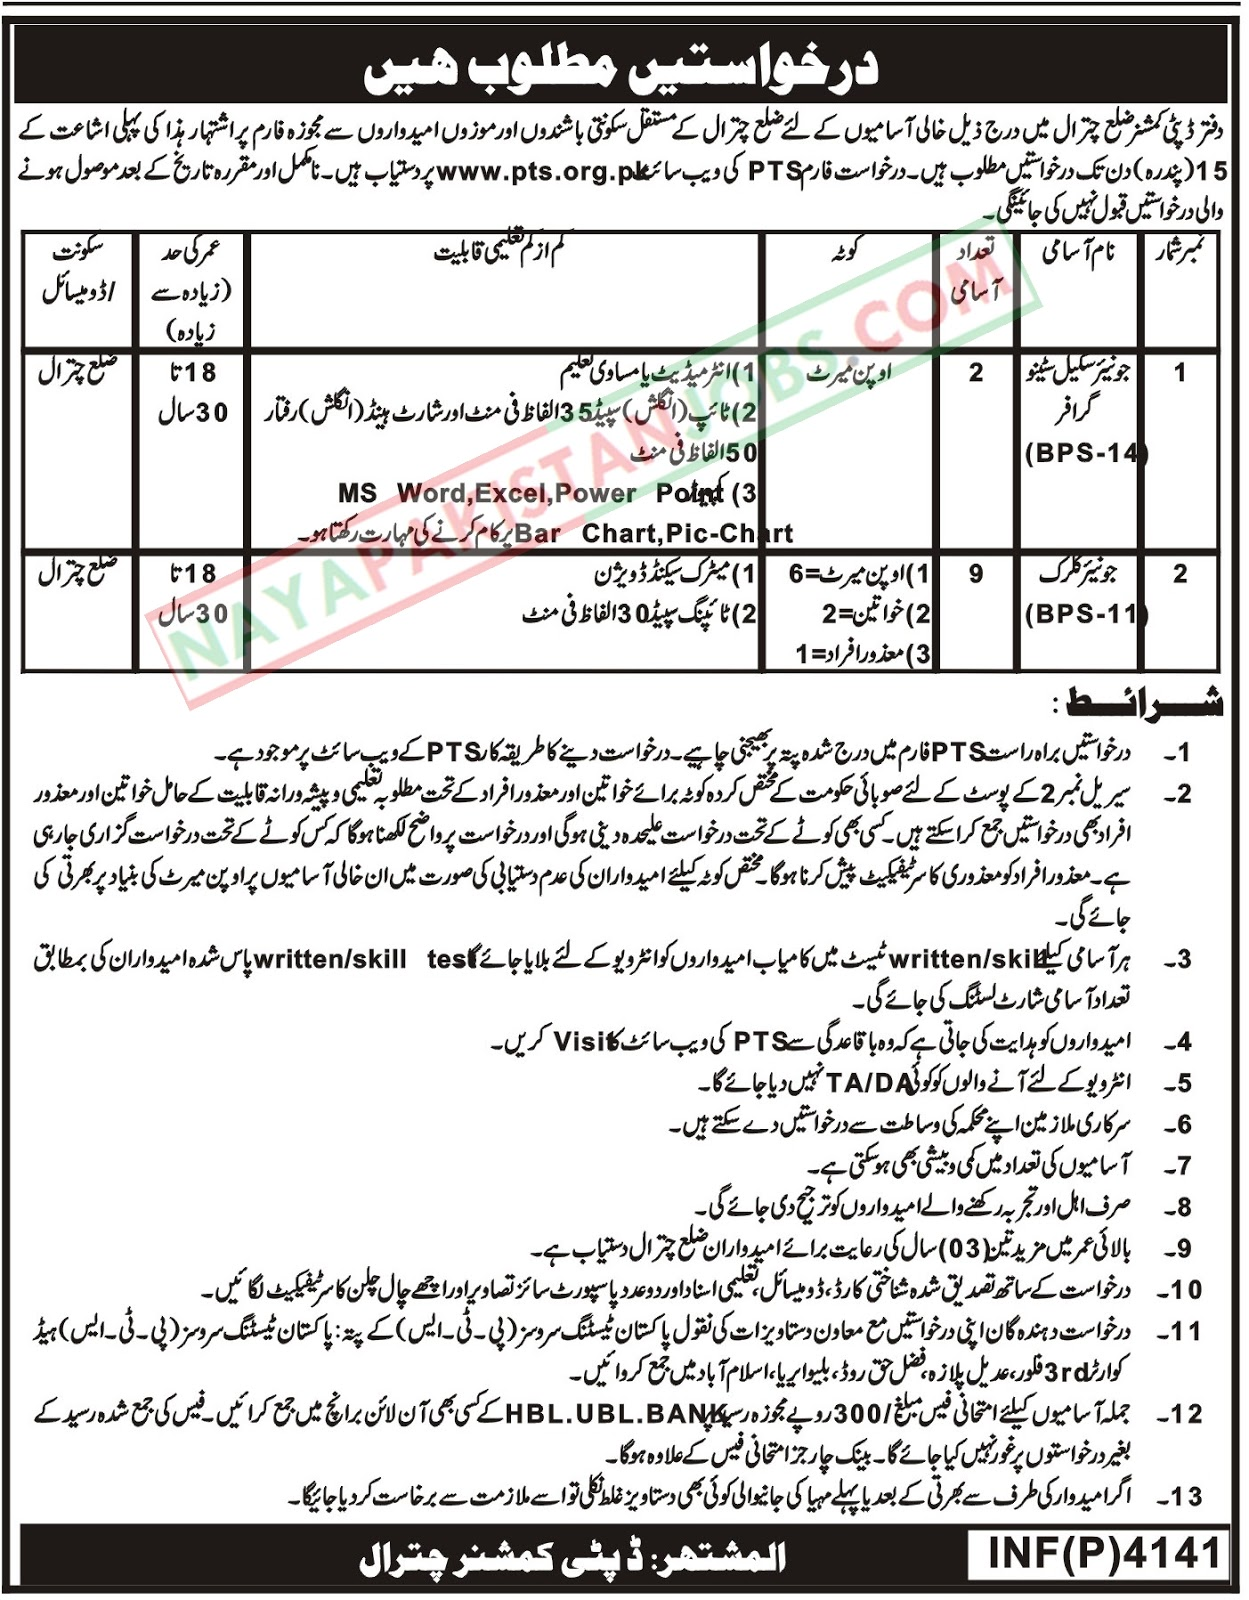 Latest Vacancies Announced in Office Of The Deputy Commissioner Chitral via Pakistan Testing Service 29 October 2018 - Naya Pakistan